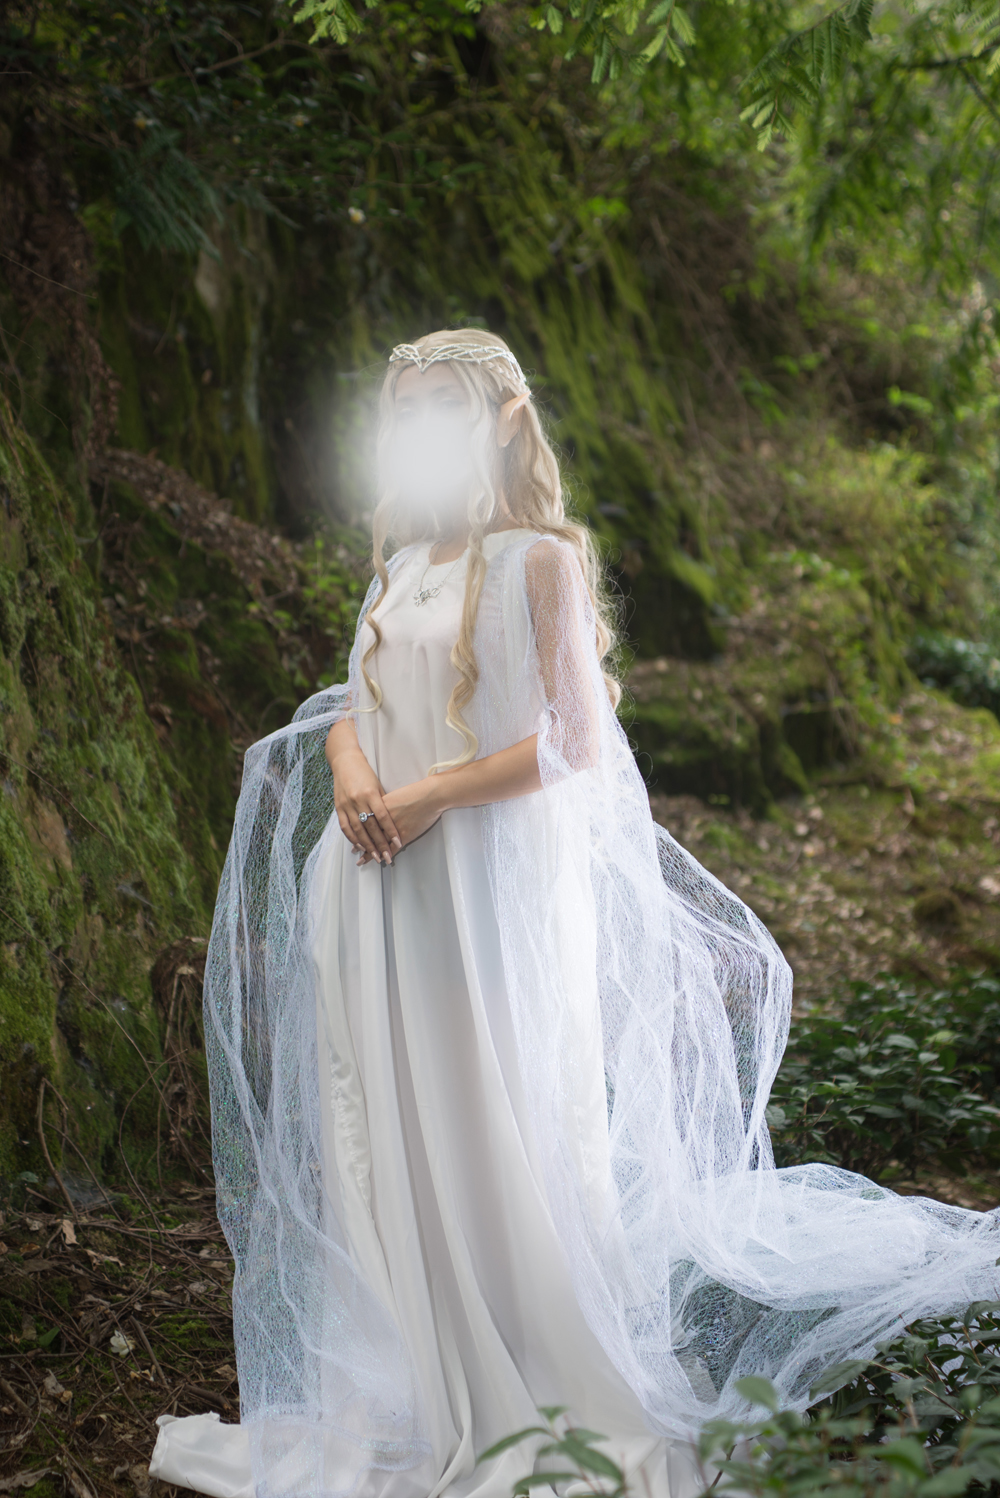 2016 The Hobbit The Lord of the Rings Galadriel Cosplay Costume Galadriel Dress Artanis Nerwen Cosplay Dress